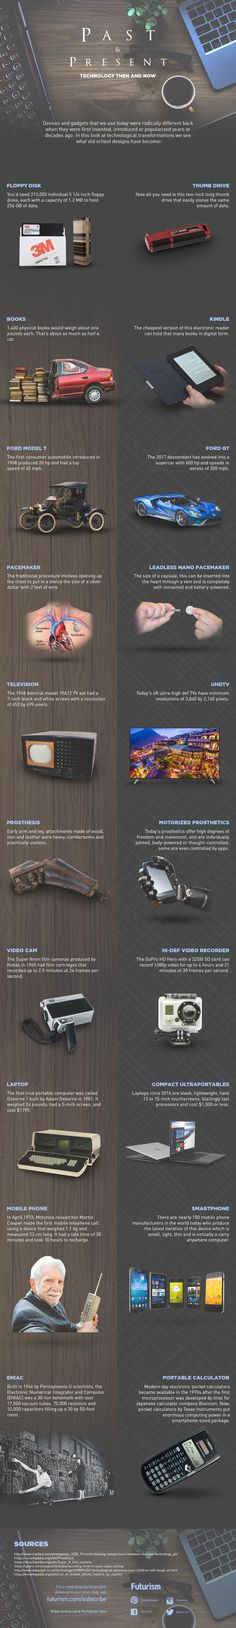 Remember floppy disks? Super 8 cameras? ENIAC?   Of course you don't. That's evolving technology for you.  http://futurism.com/images/past-and-present-technology-then-and-now-infographic/?utm_campaign=coschedule&utm_source=pinterest&utm_medium=Futurism&utm_content=Past%20and%20Present%20Technology%20Then%20and%20Now%20%5BINFOGRAPHIC%5D